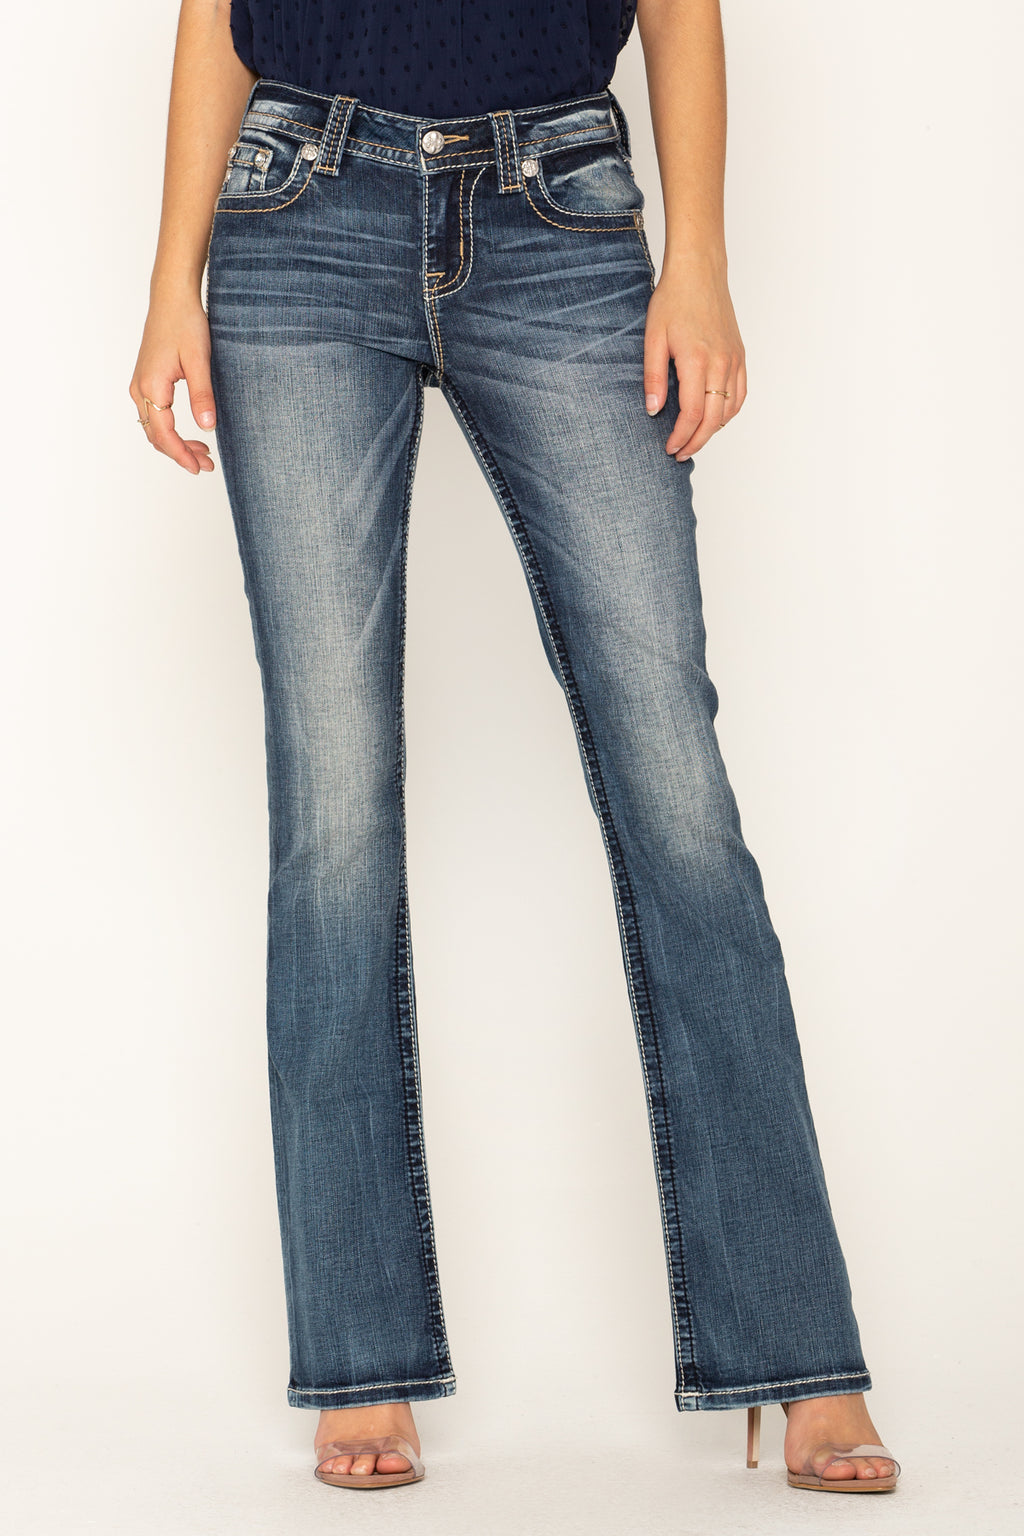 ed7bb52f324 FLY WITH ME BOOTCUT JEANS - front